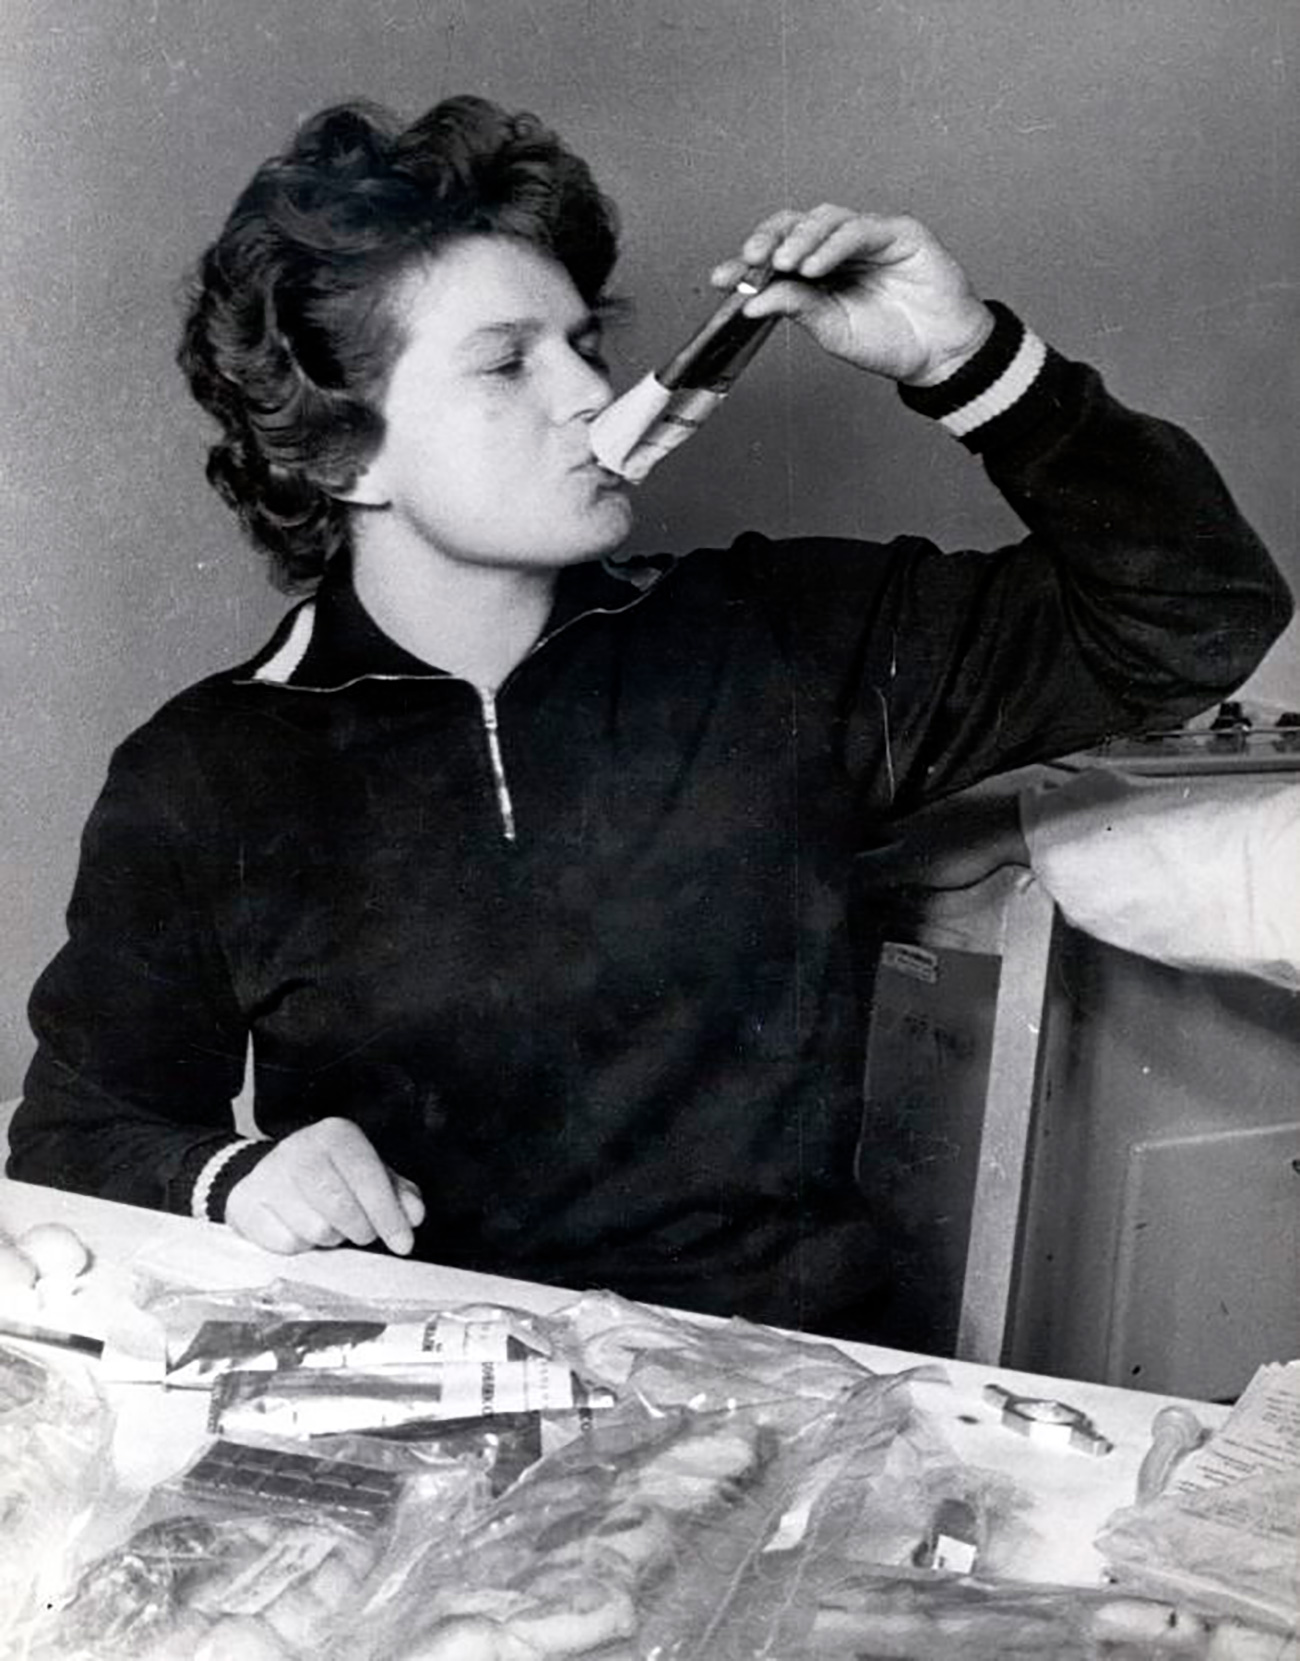 Valentina Tereshkova tries space food ahead of blast-off. Tereshkova became the first woman in space. Her space flight on June 16, 1963, lasted nearly three days - 70 hours and 50 minutes, during which time she orbited the globe 48 times. 1963.